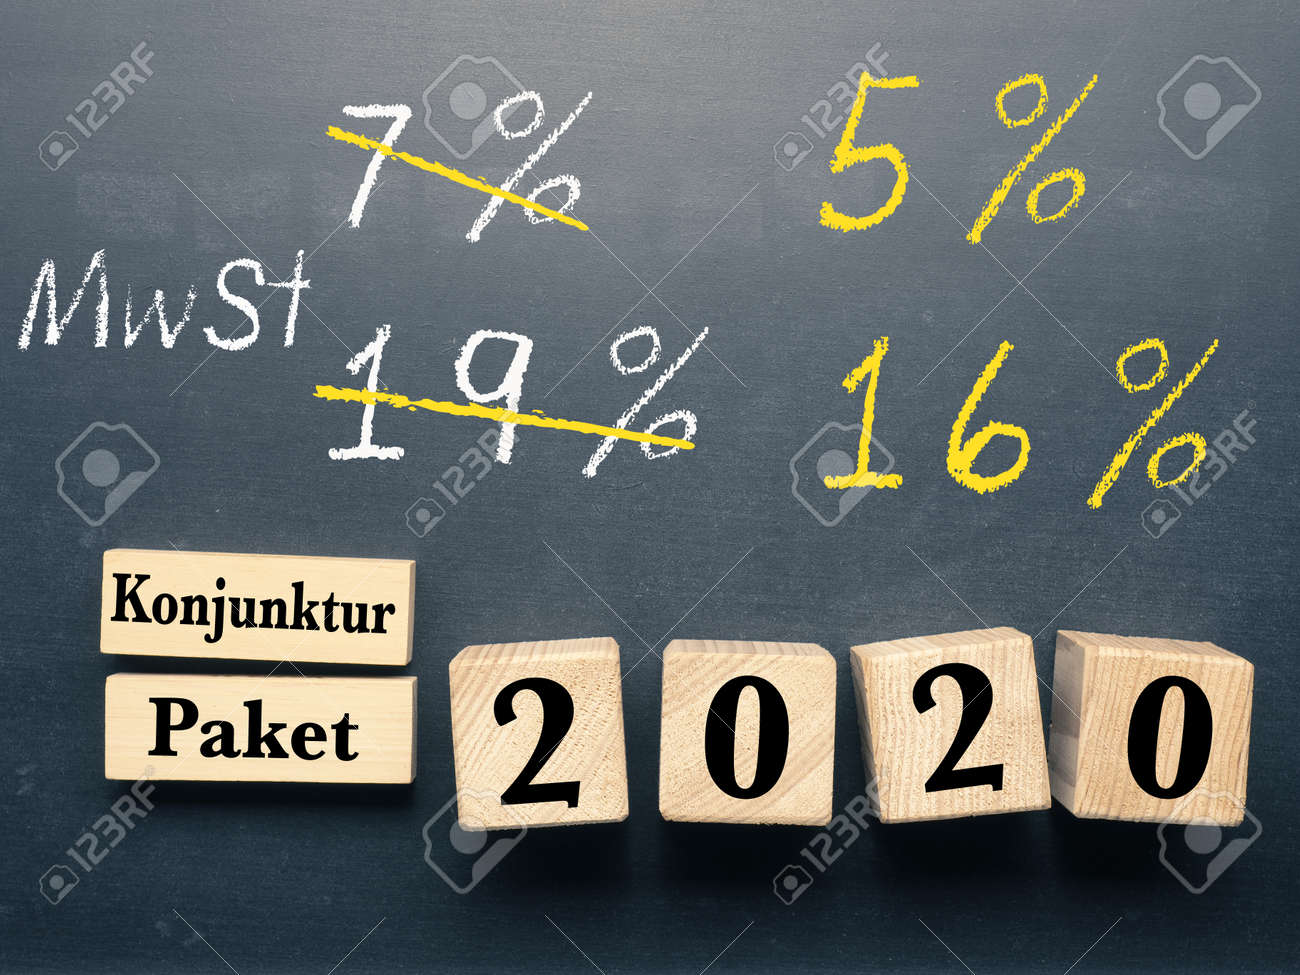 Conceptual image with wooden blocks on a chalkboard for economic stimulus package for Germany. - 149592004